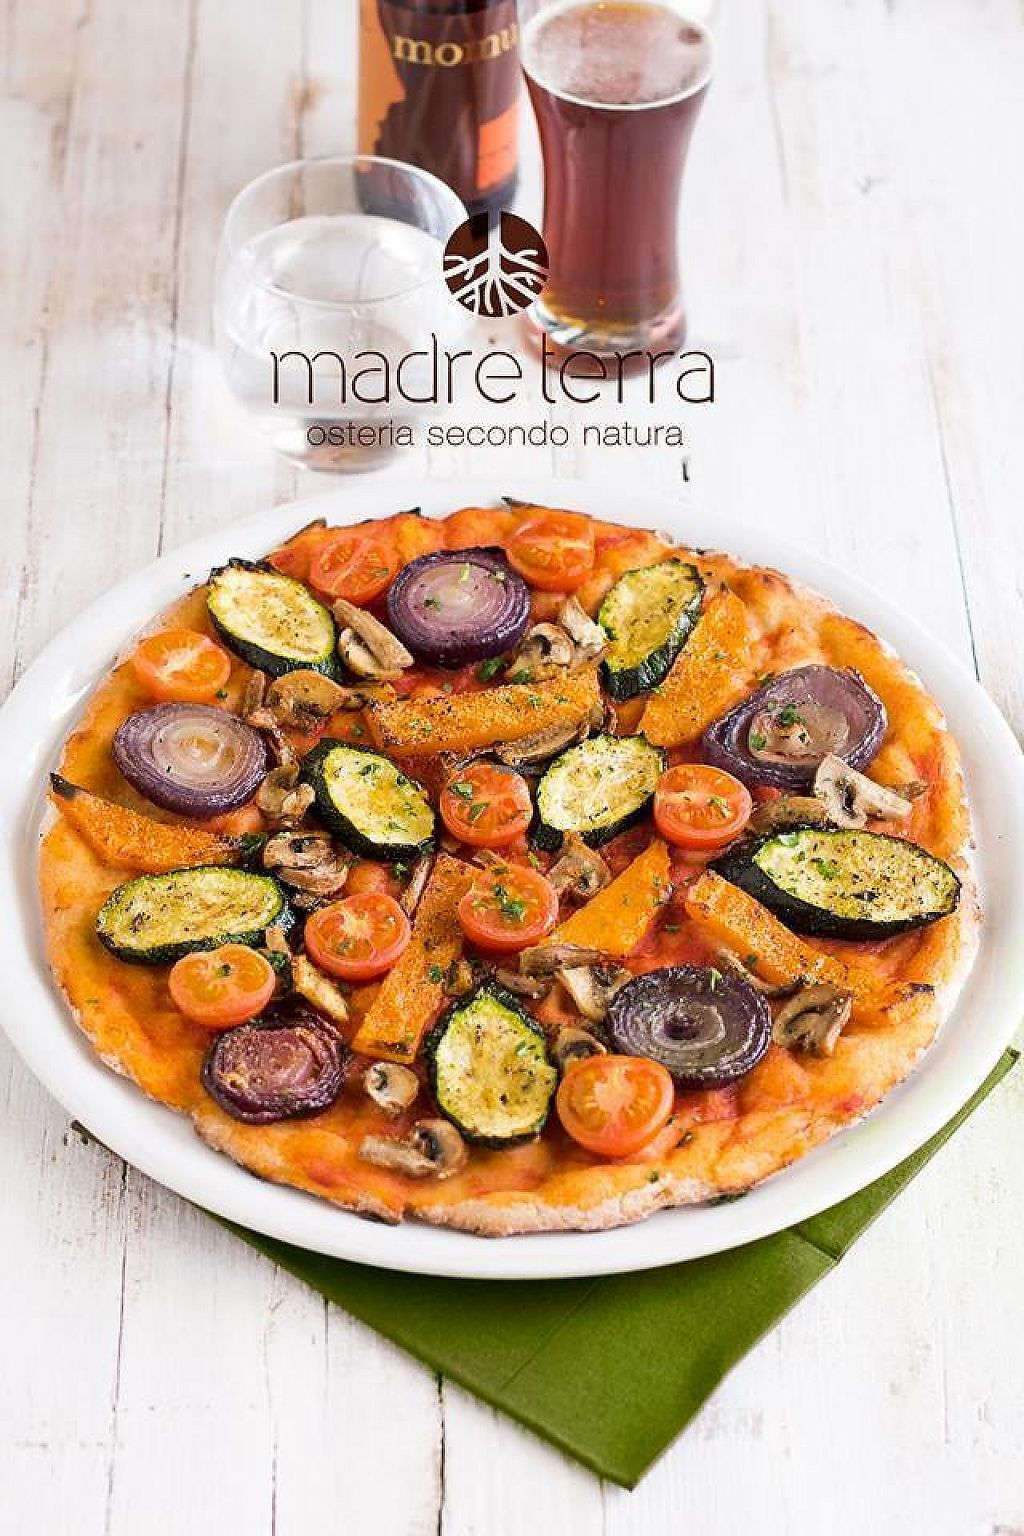 """Photo of Madre Terra  by <a href=""""/members/profile/community5"""">community5</a> <br/>Vegan pizza <br/> April 24, 2017  - <a href='/contact/abuse/image/90980/251940'>Report</a>"""